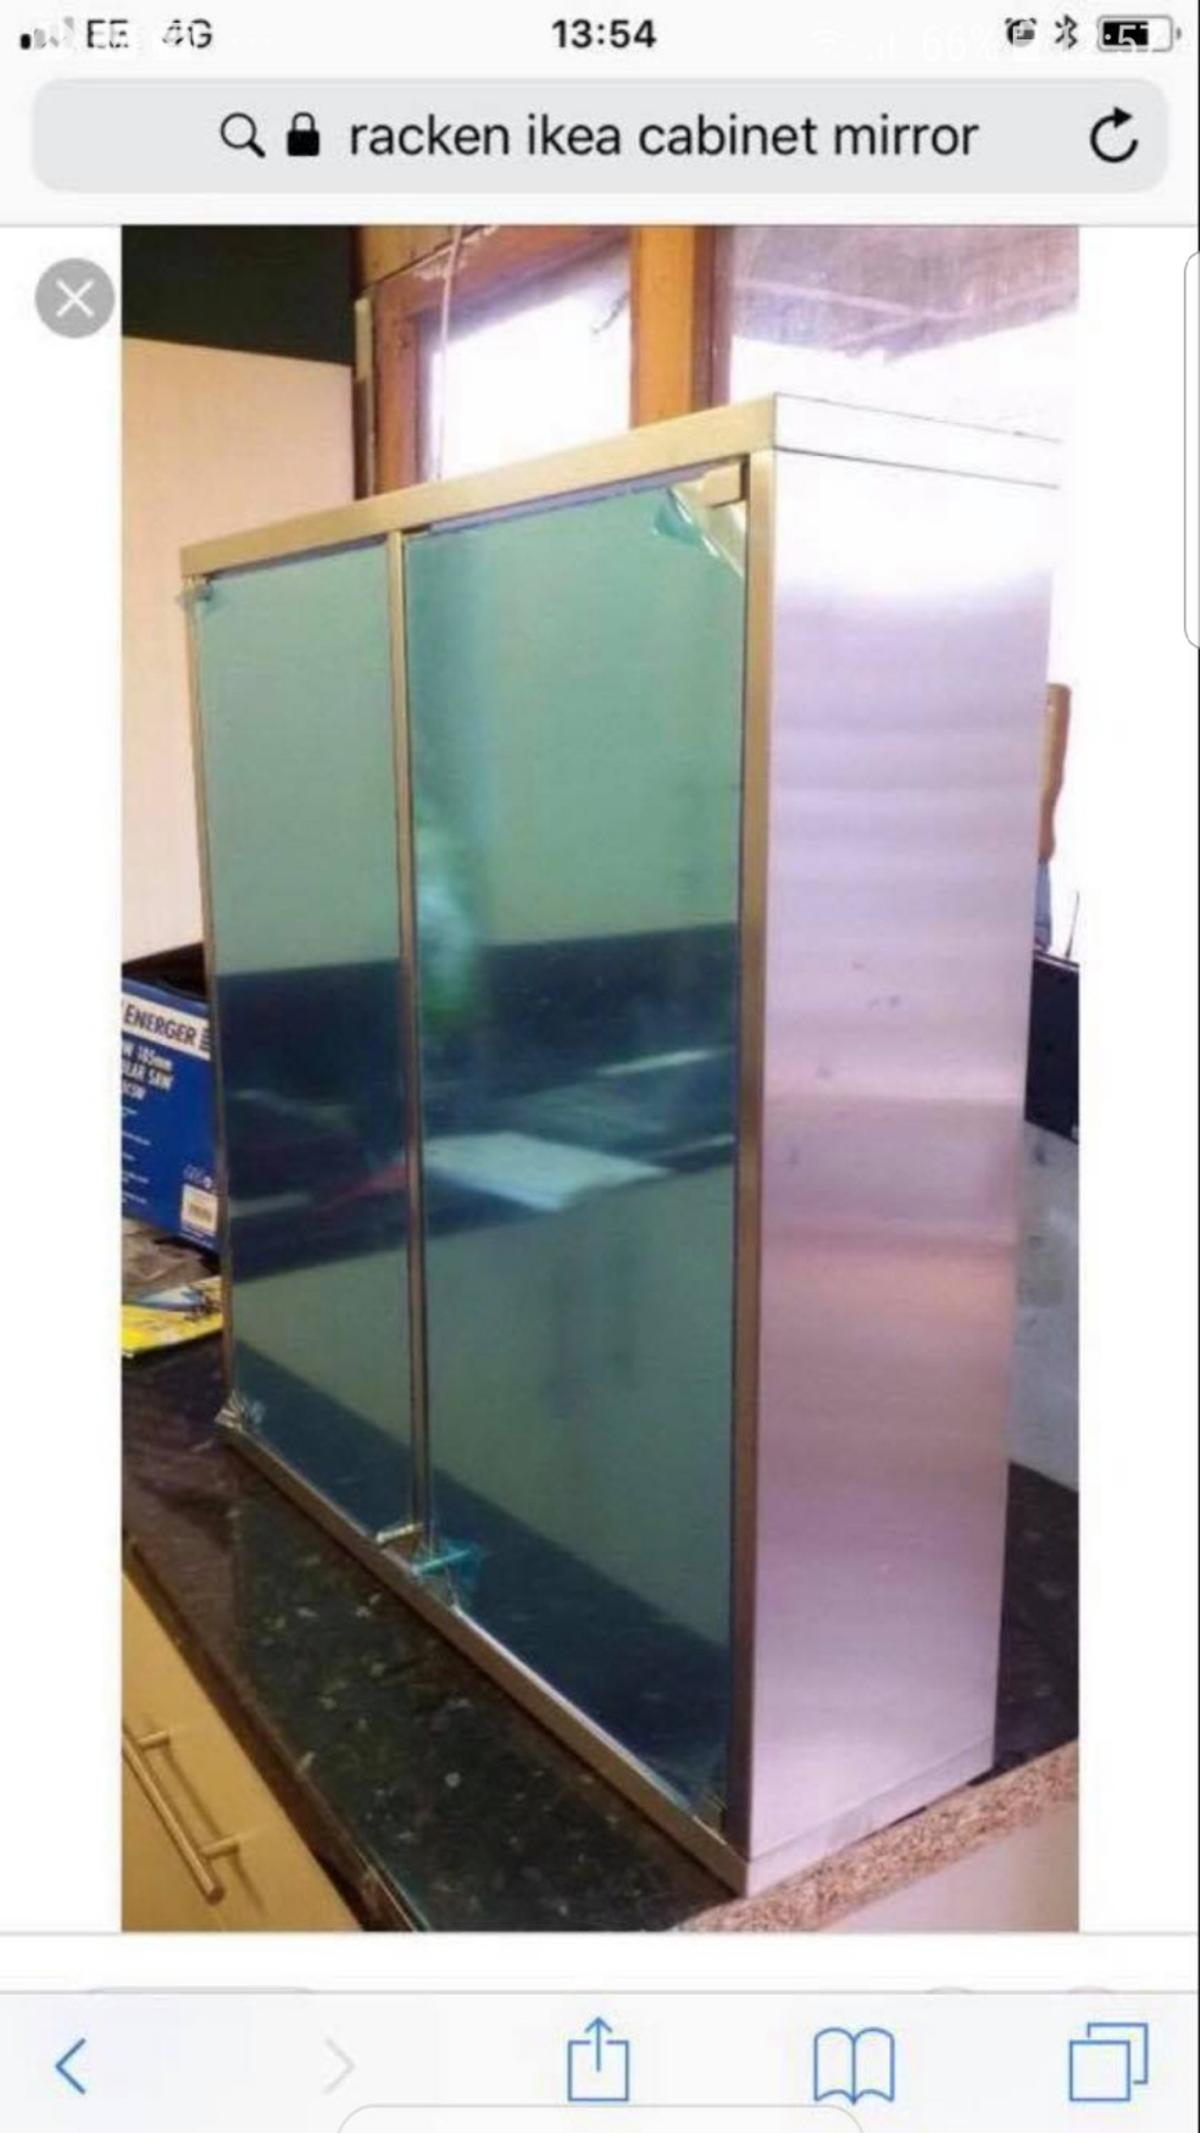 Ikea Racken Double Bathroom Mirror Cabinet In Ct9 Thanet For 35 00 For Sale Shpock